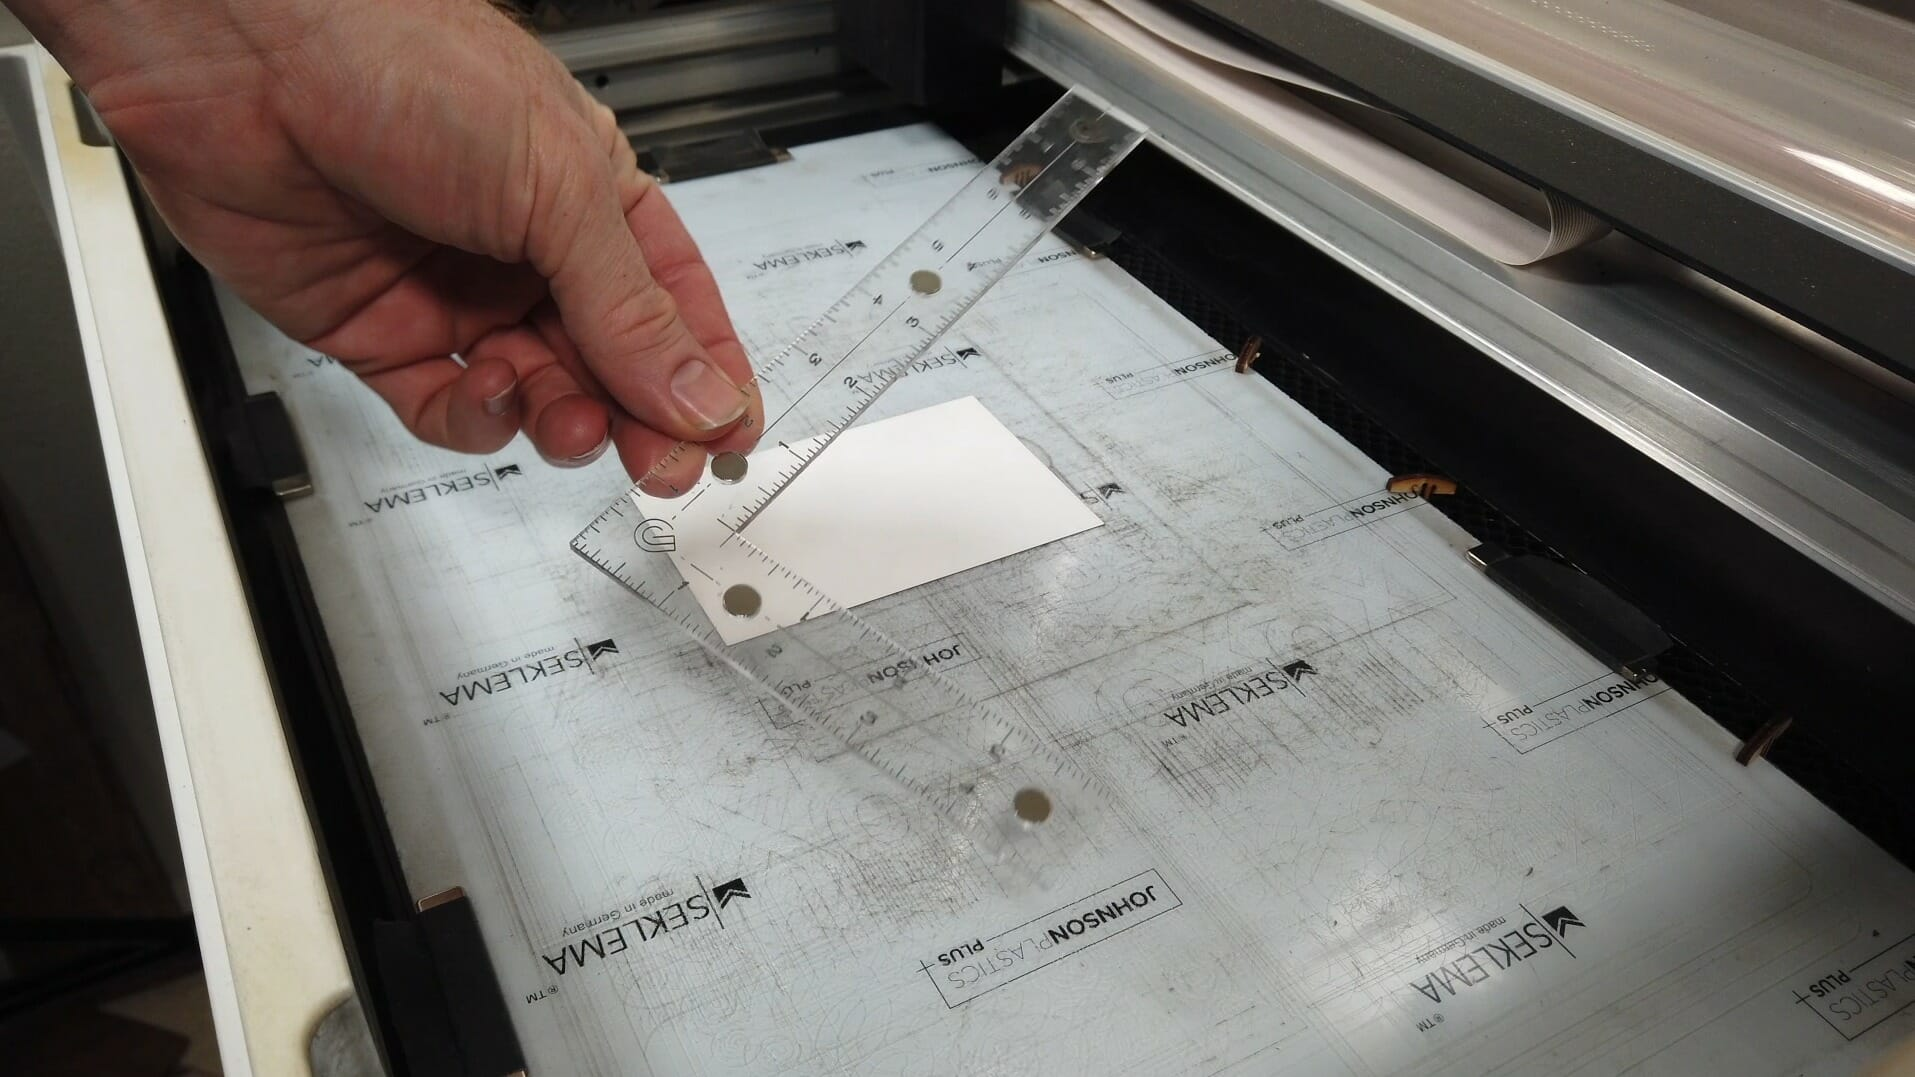 Acrylic square for positioning